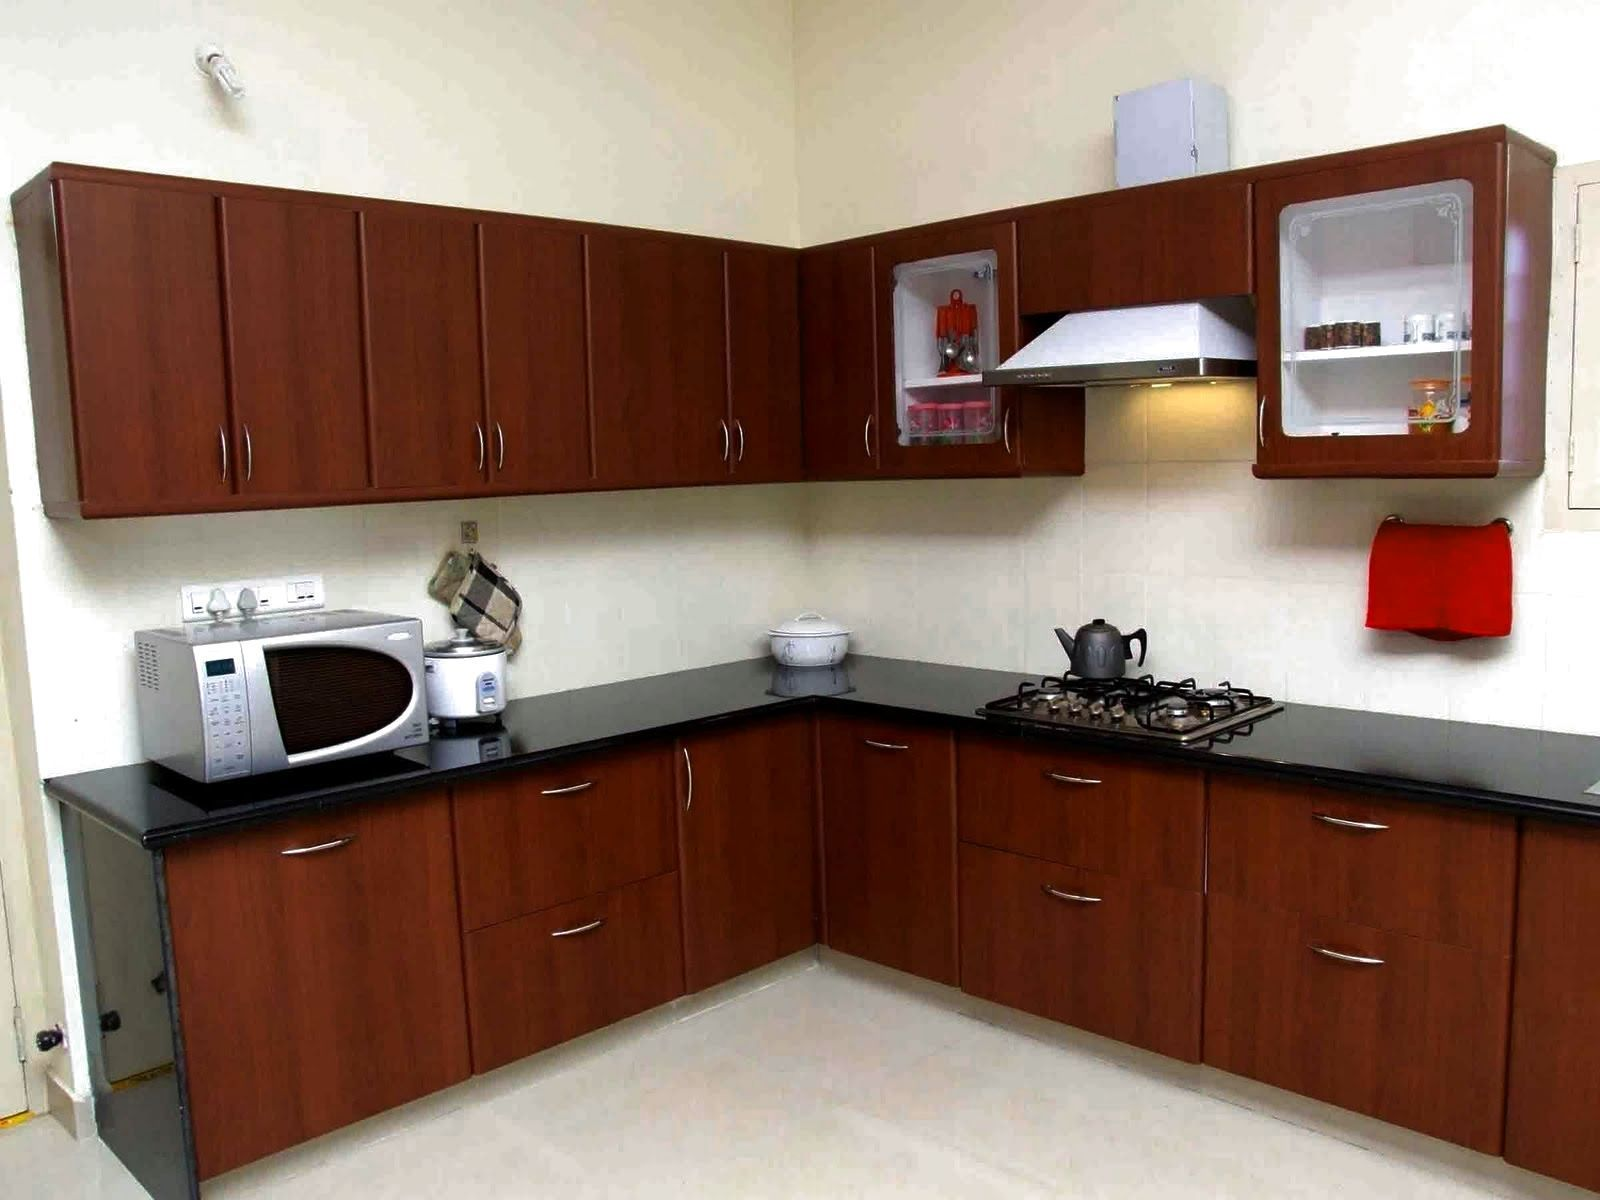 Replacing Your Kitchen Cabinets Are A Huge Financial Investment Below S Our Leading Kitchen Cabinet Idea Küchen Design Küchen Design Ideen Küchendesign Modern